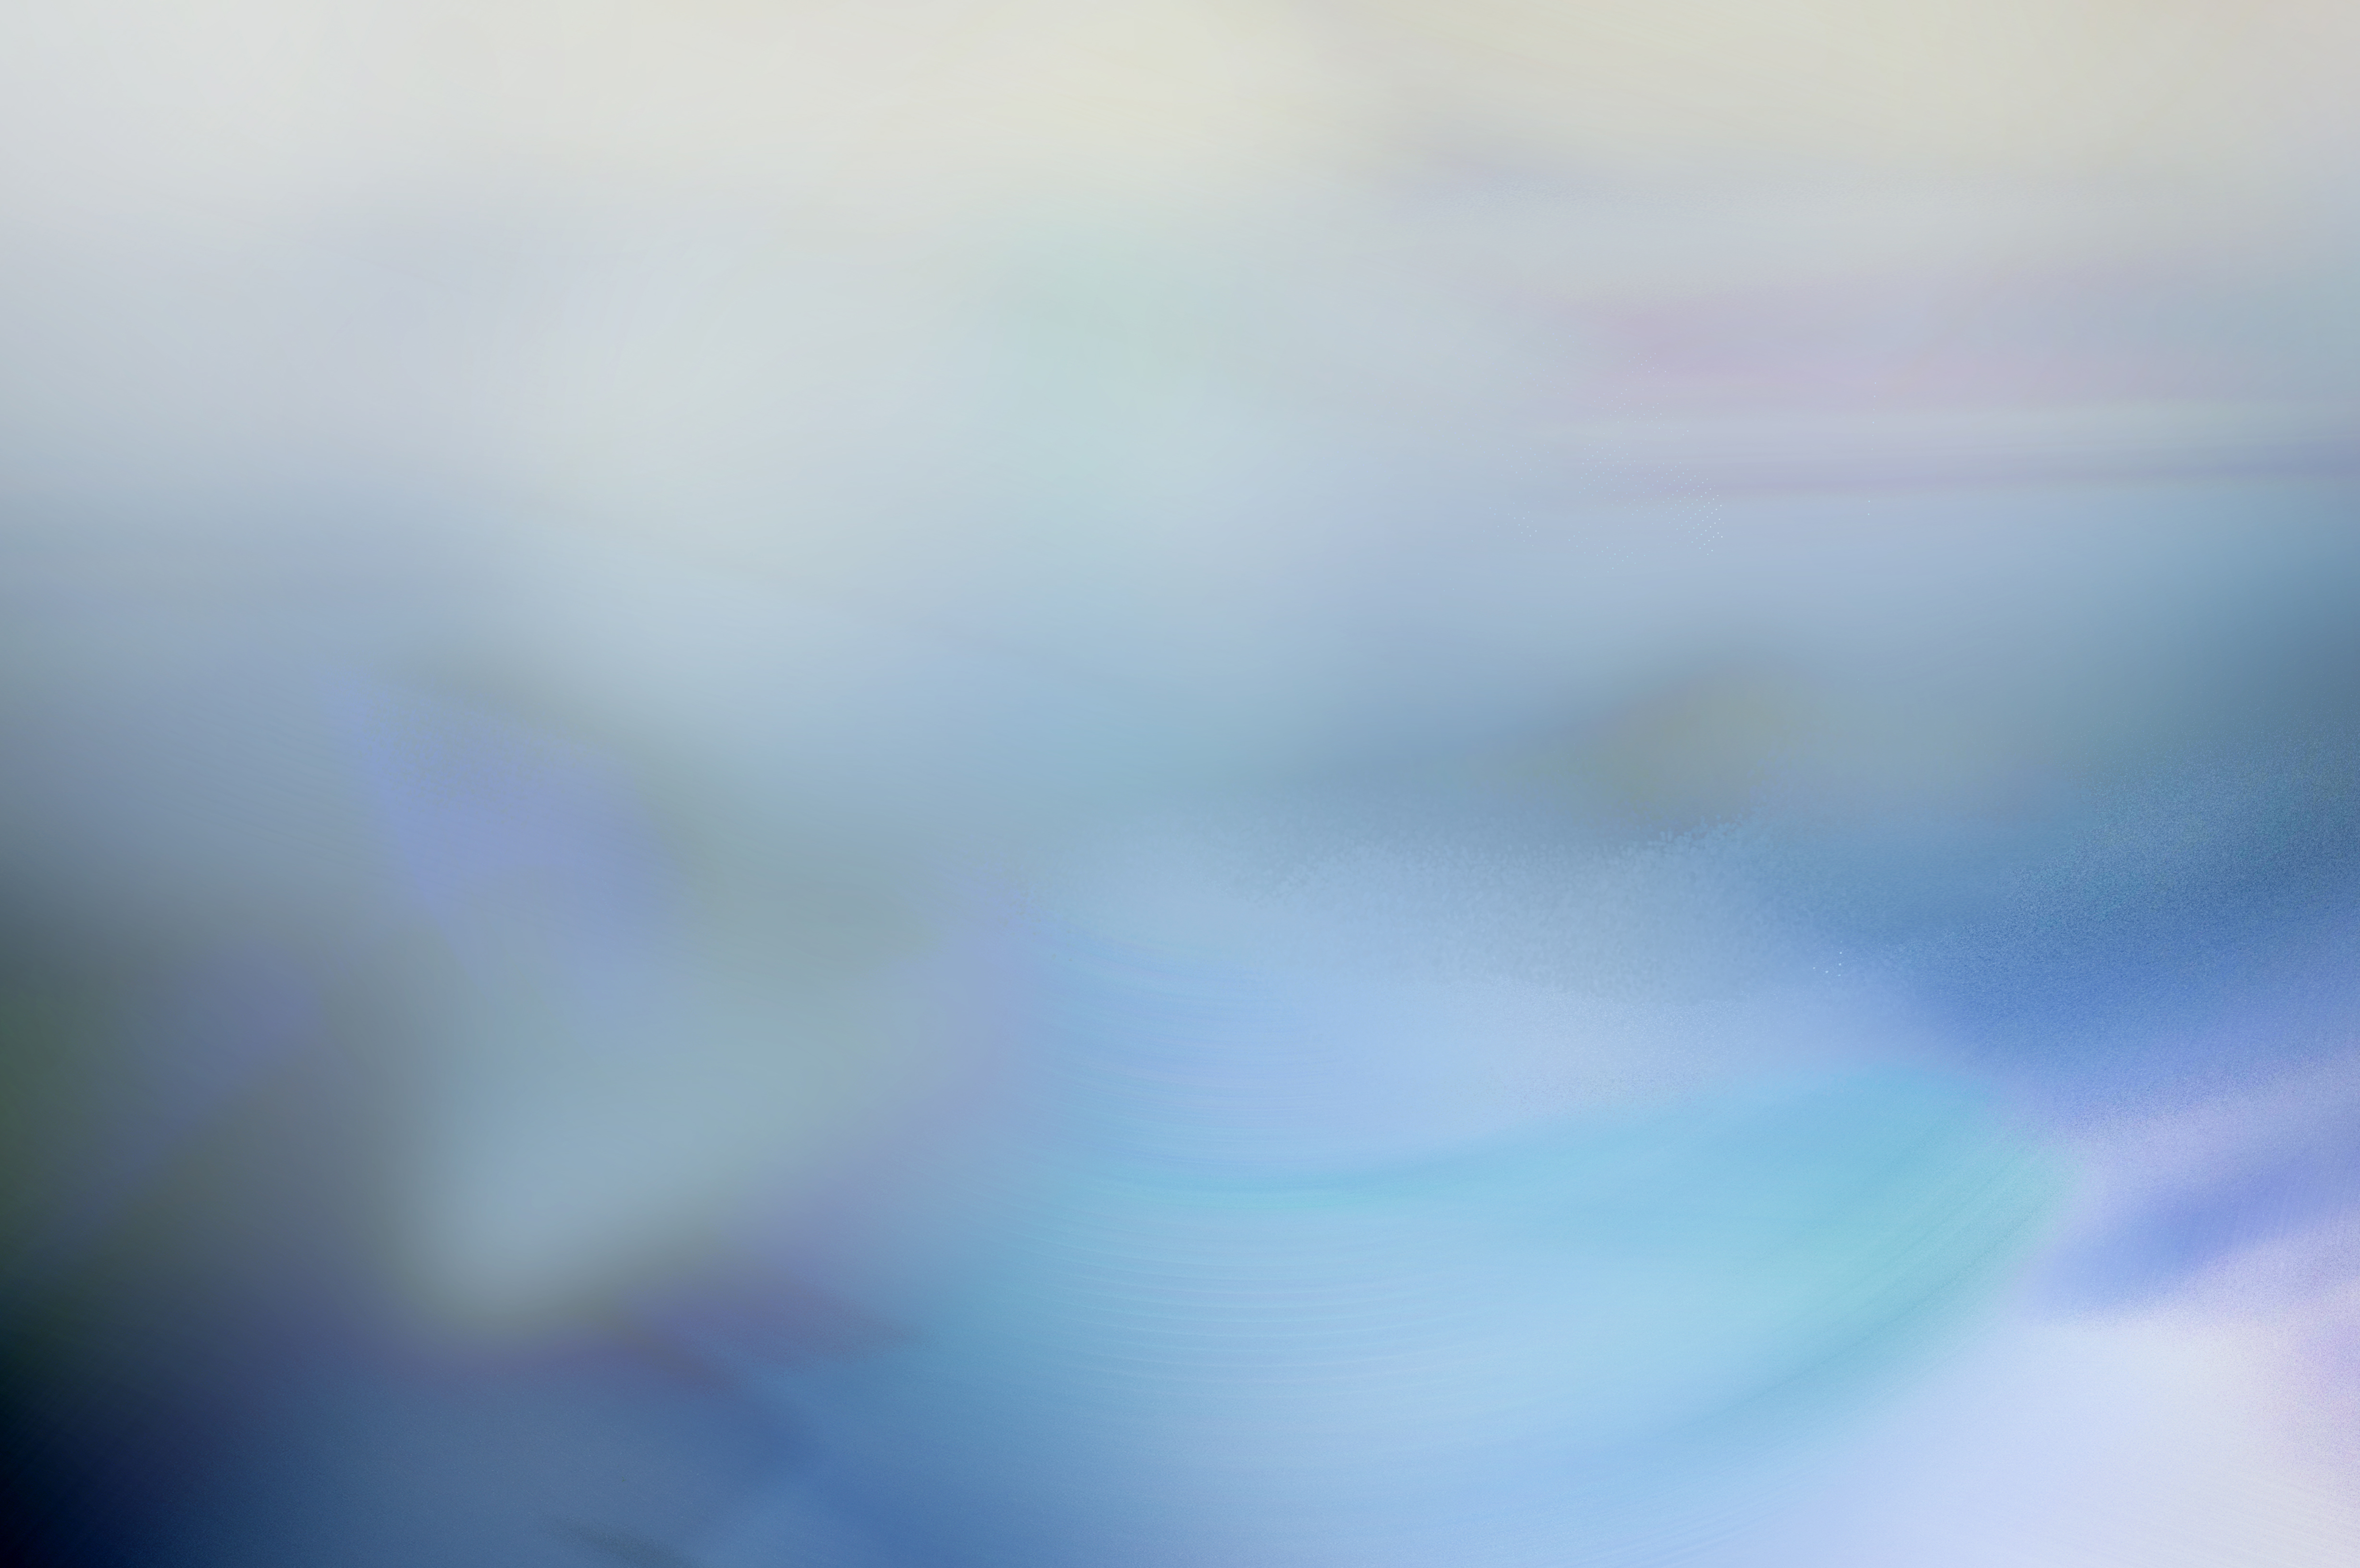 Ethereal Backgrounds example image 15